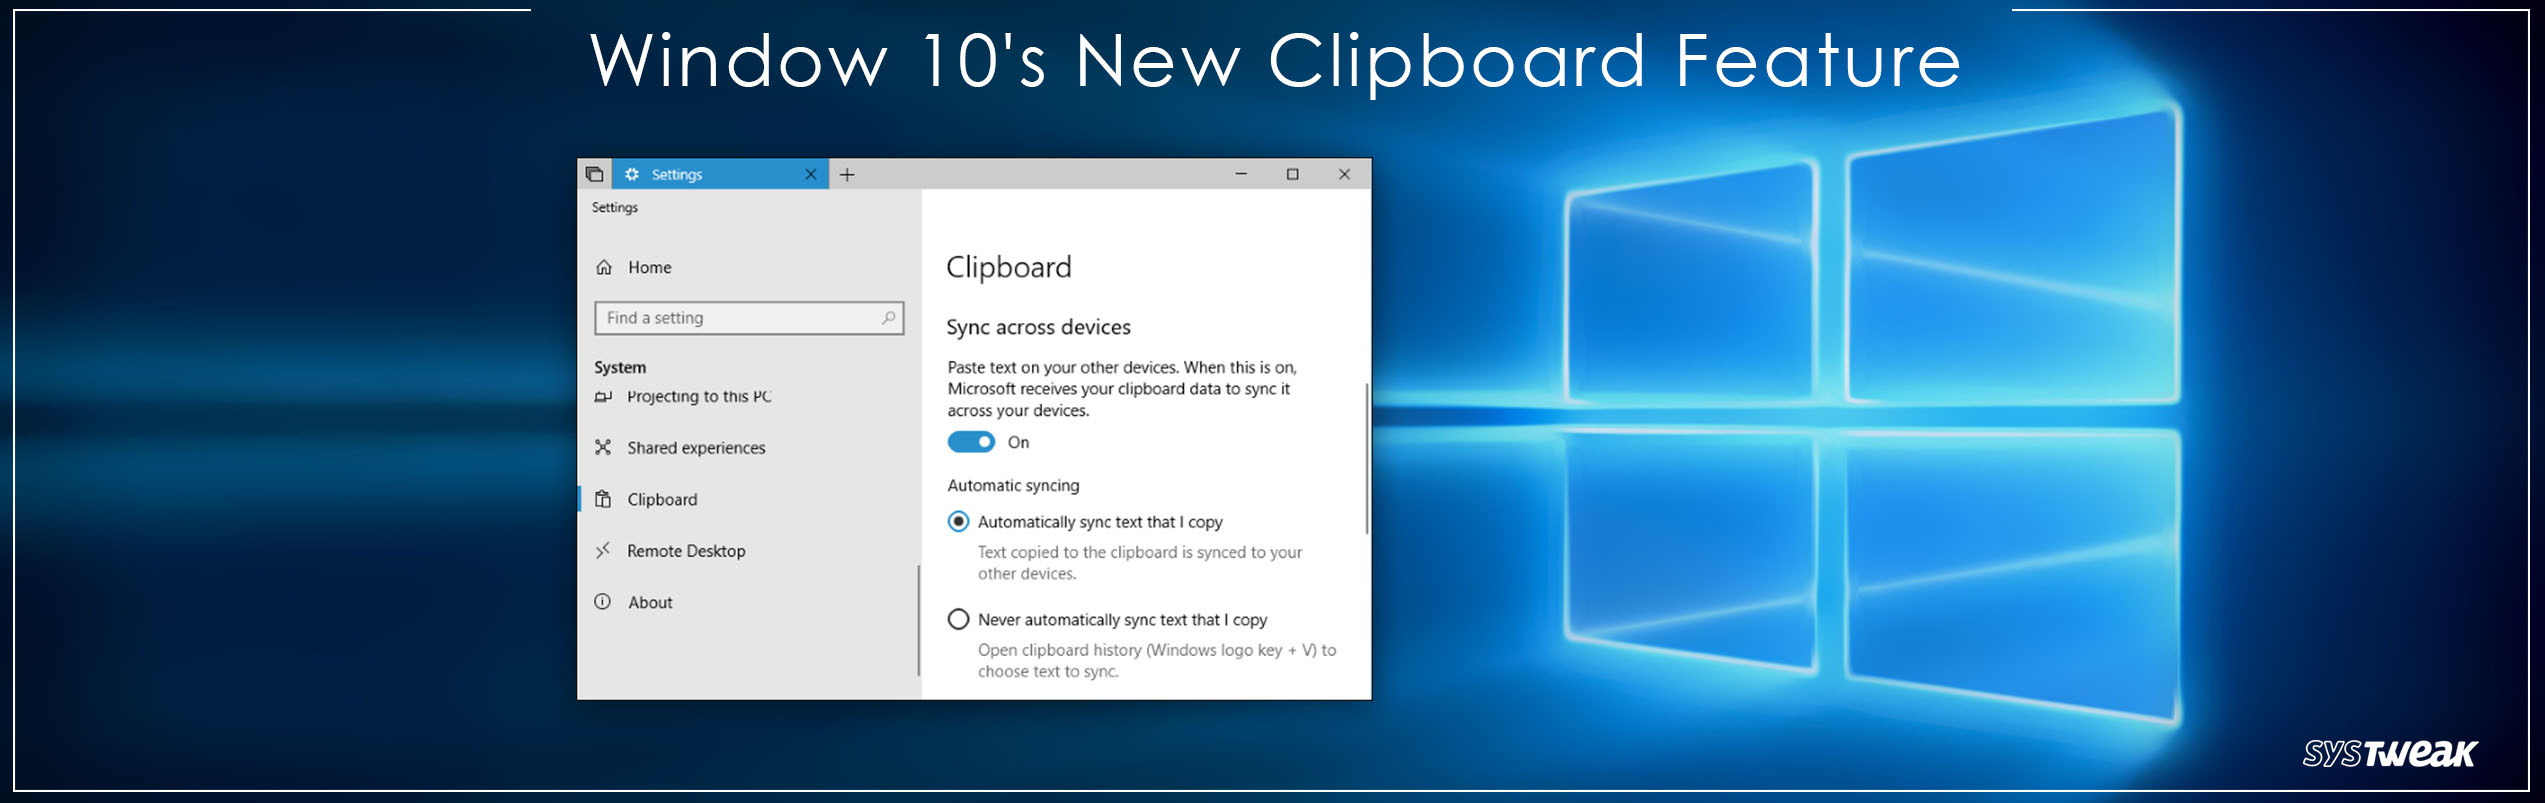 Quick Guide on Using Windows 10's New Clipboard